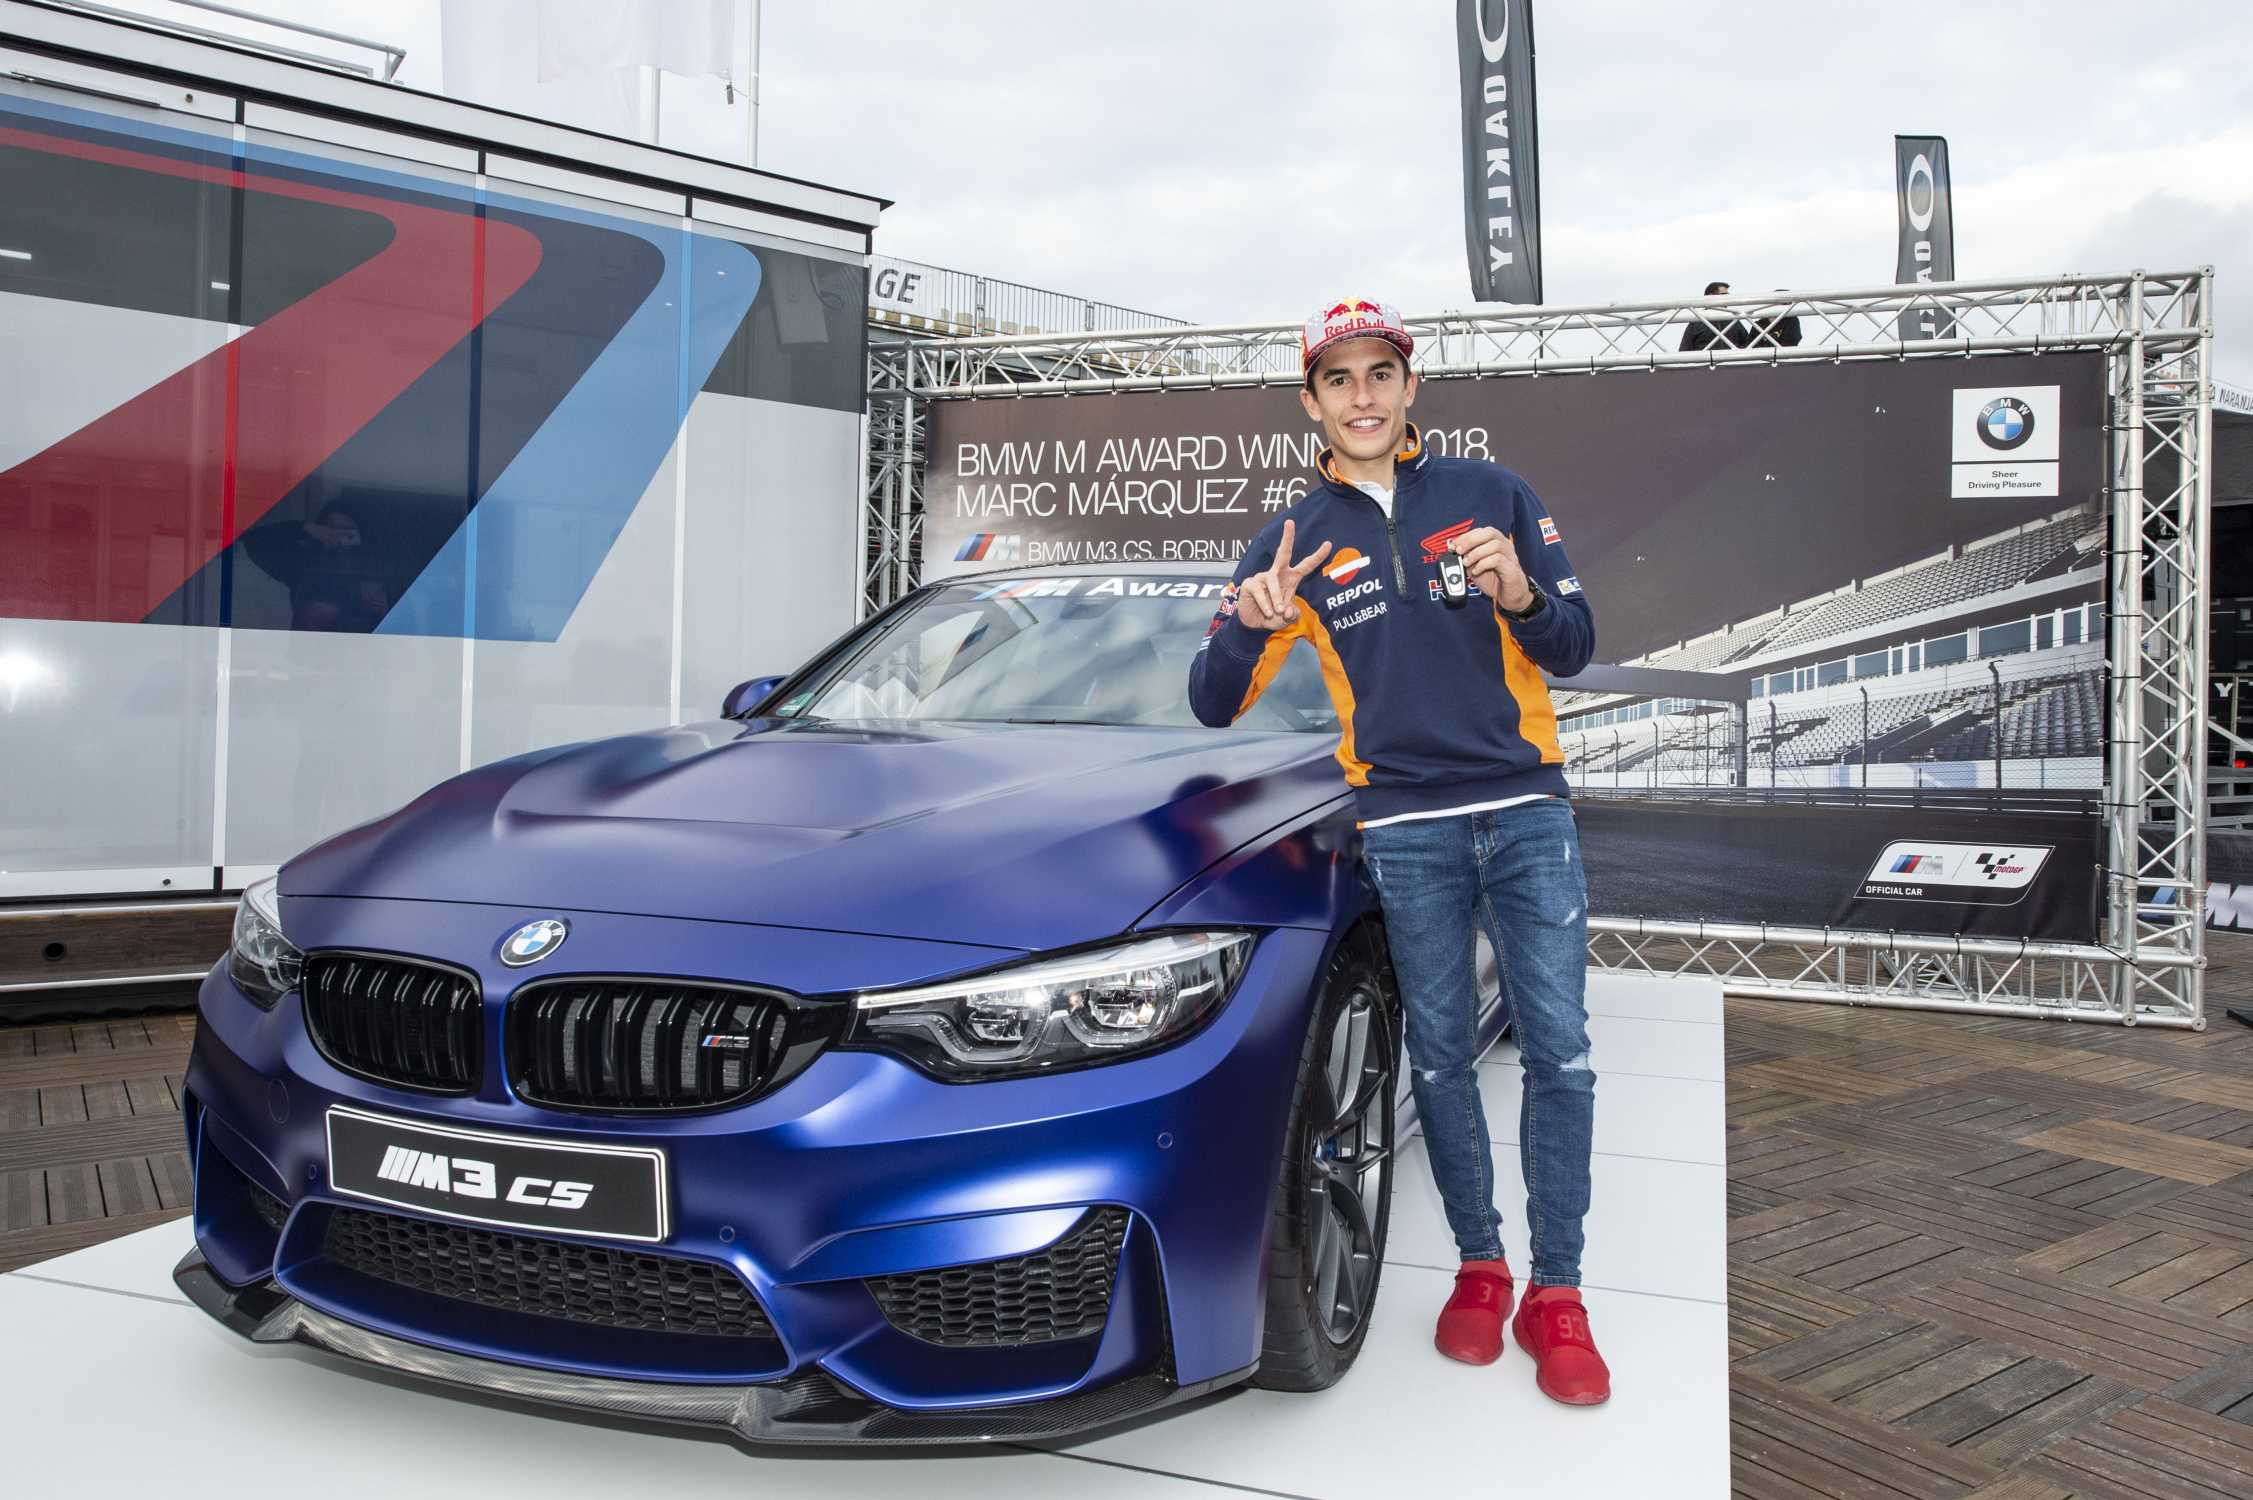 Marc Márquez Extends Record Winning Sequence In The Bmw M Award